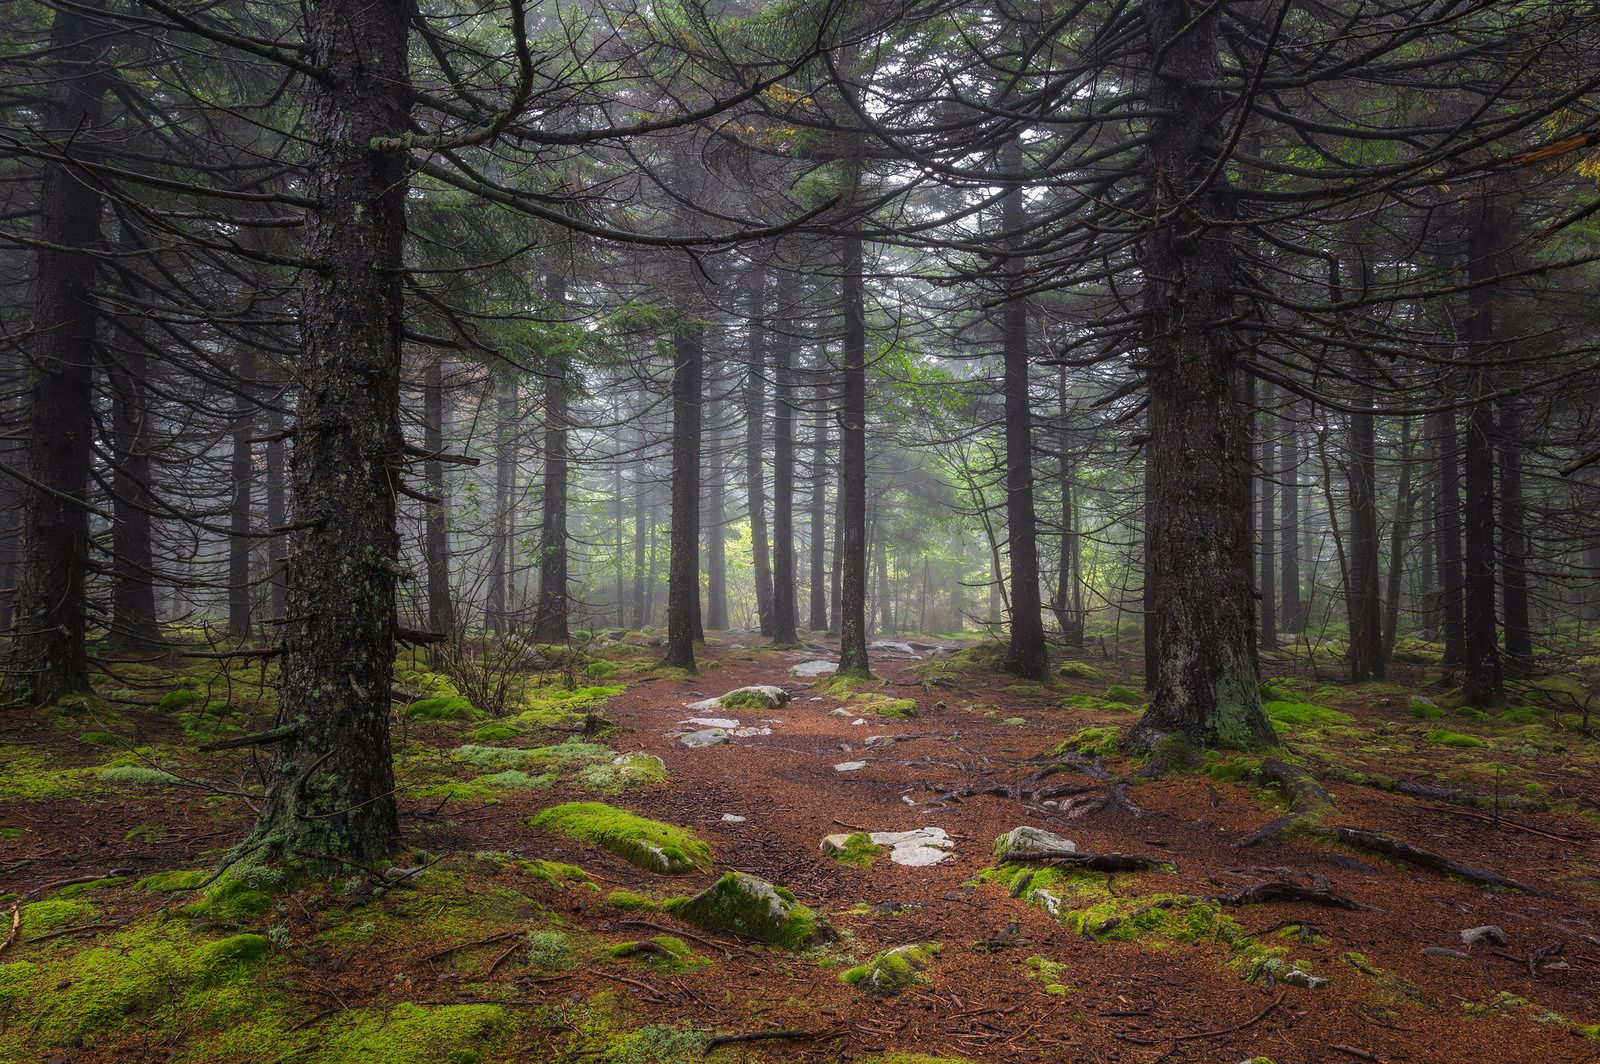 The Majestic Green - Spruce Knob, West Virginia | by reflectioninapool